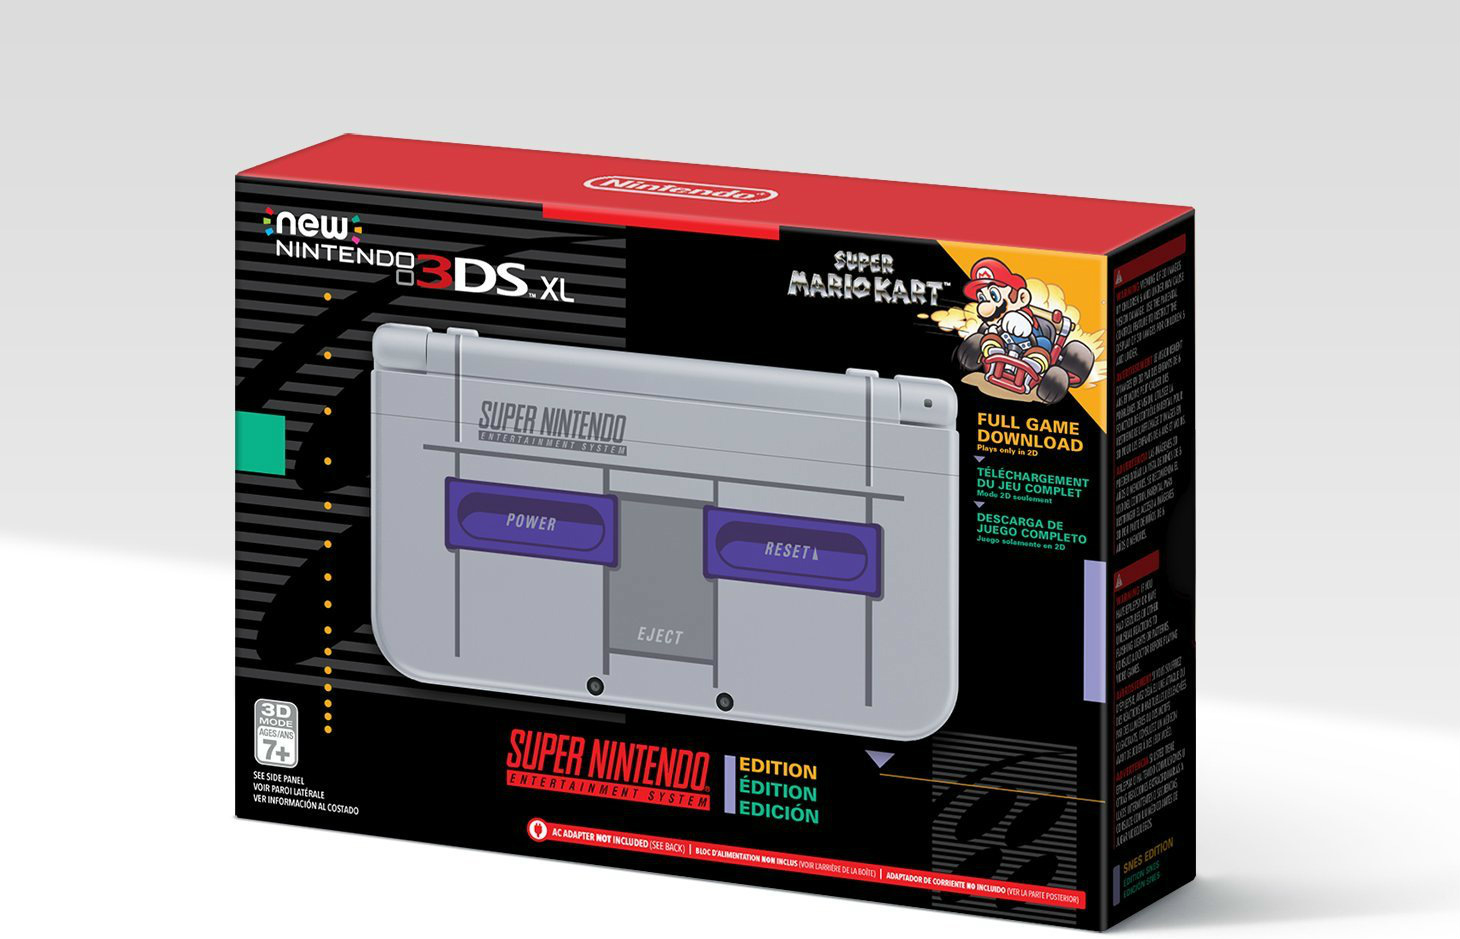 Nintendo to release SNES-themed 3DS XL in the U.S.